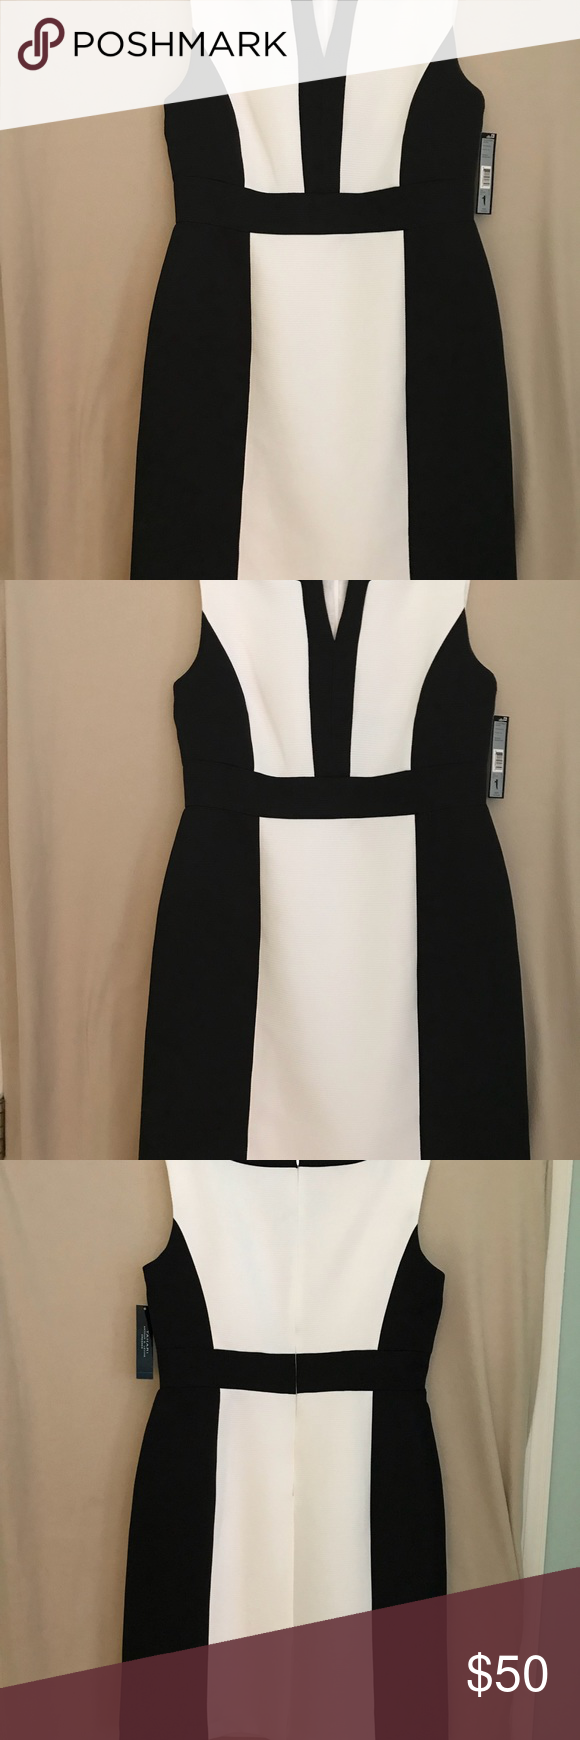 Black and white Tahari dress size 12. Black and white Tahari by Alfred S. Levine dress size 12. Runs small. Never been worn and still has tags. Sleeveless, back zip, dry clean only. 38.5 inches from shoulder to hem. Tahari Dresses Midi